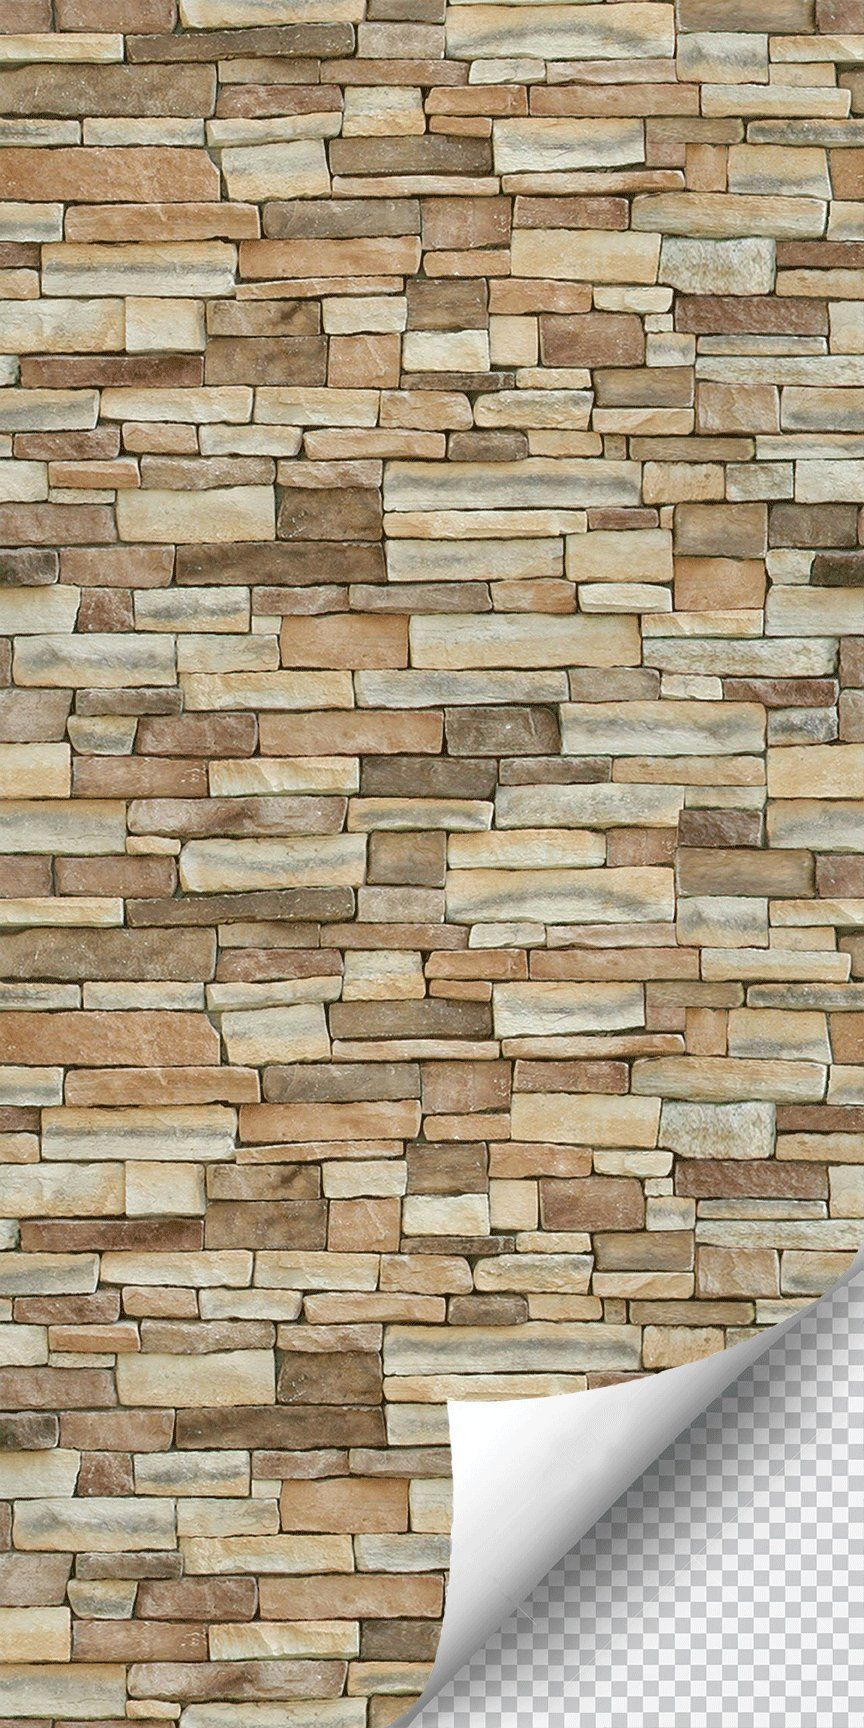 Slate Stone Style Peel And Stick Wallpaper 20 5 In X 18 Ft Roll Wallpaper Amazon Canada Country Decor Diy Interior Design Diy Diy Home Decor Projects